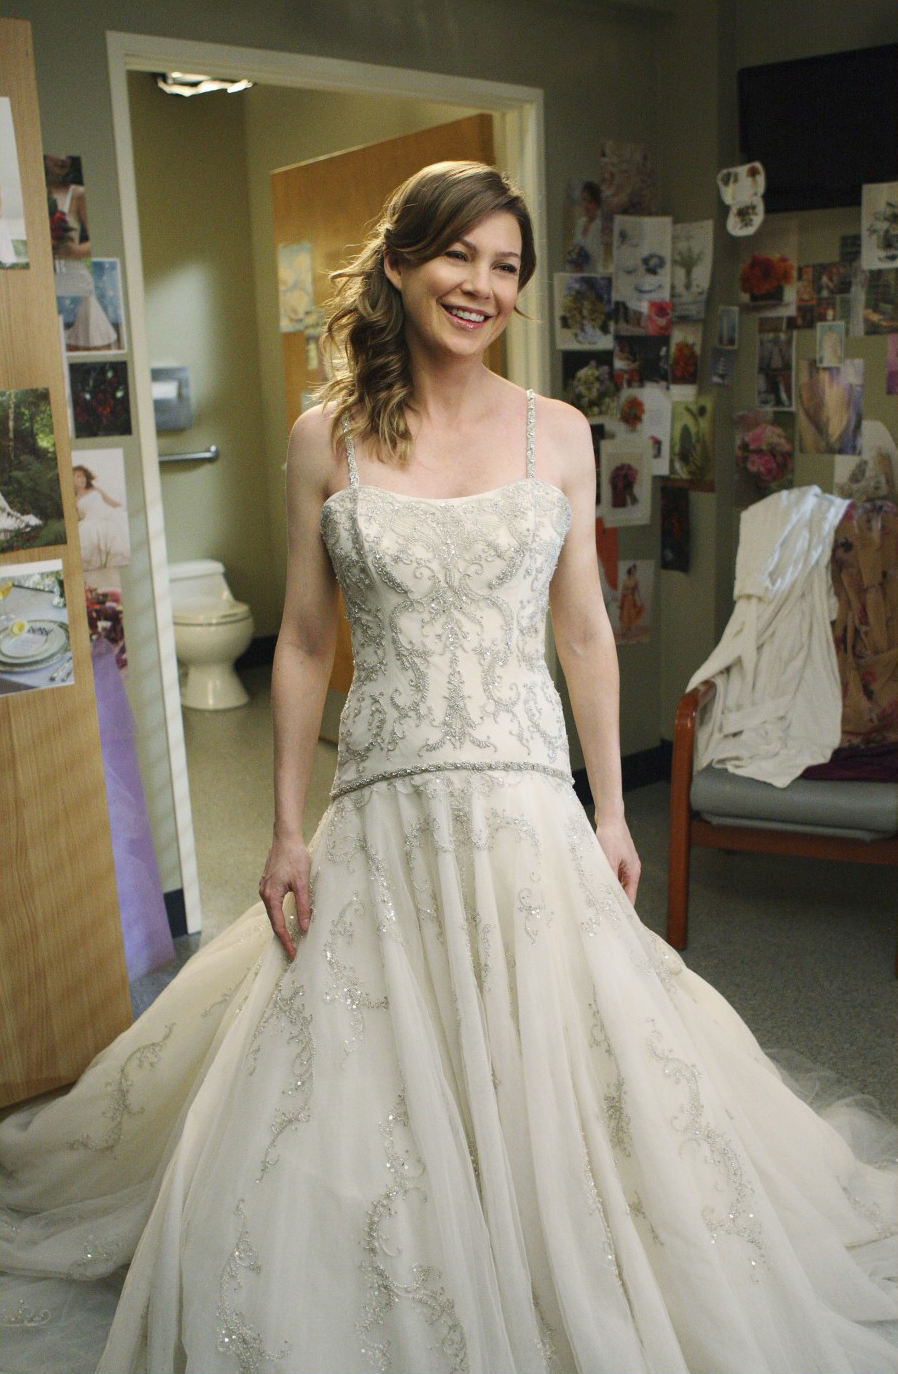 Meredith Derek Images Merediths Wedding Dress Hd Wallpaper And